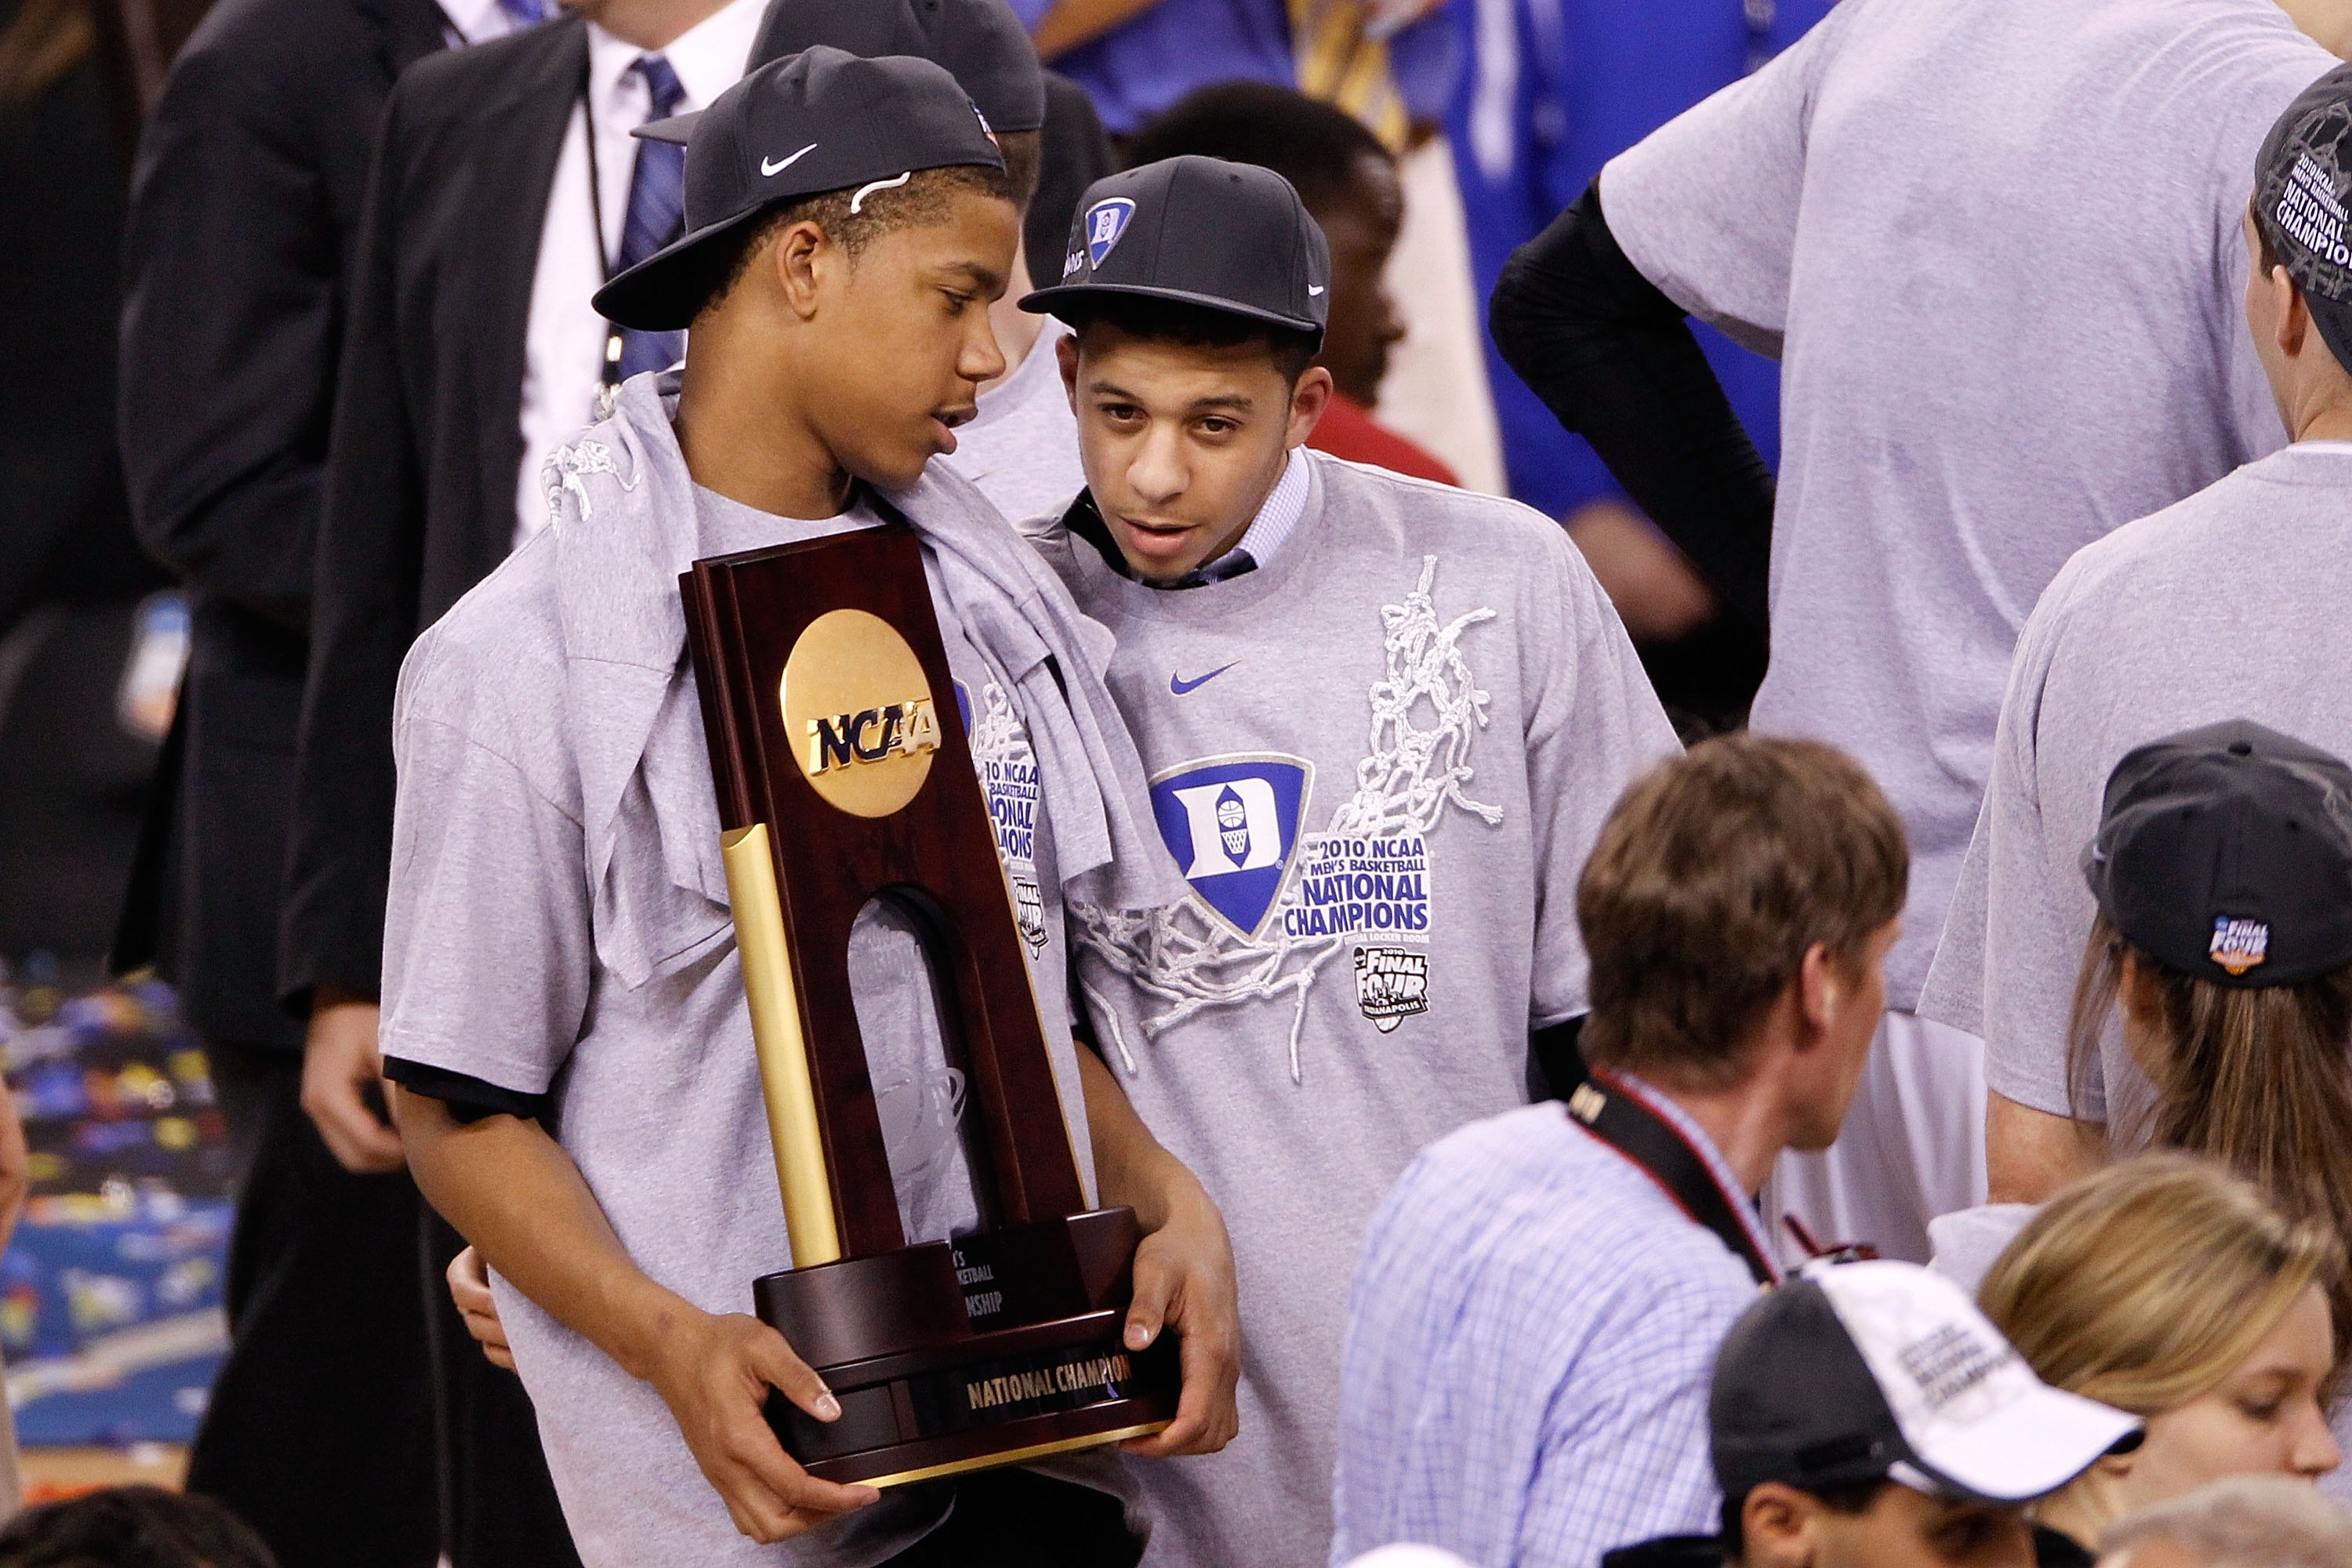 Duke youngsters Andre Dawkins and Seth Curry look to bring a second title to Durham